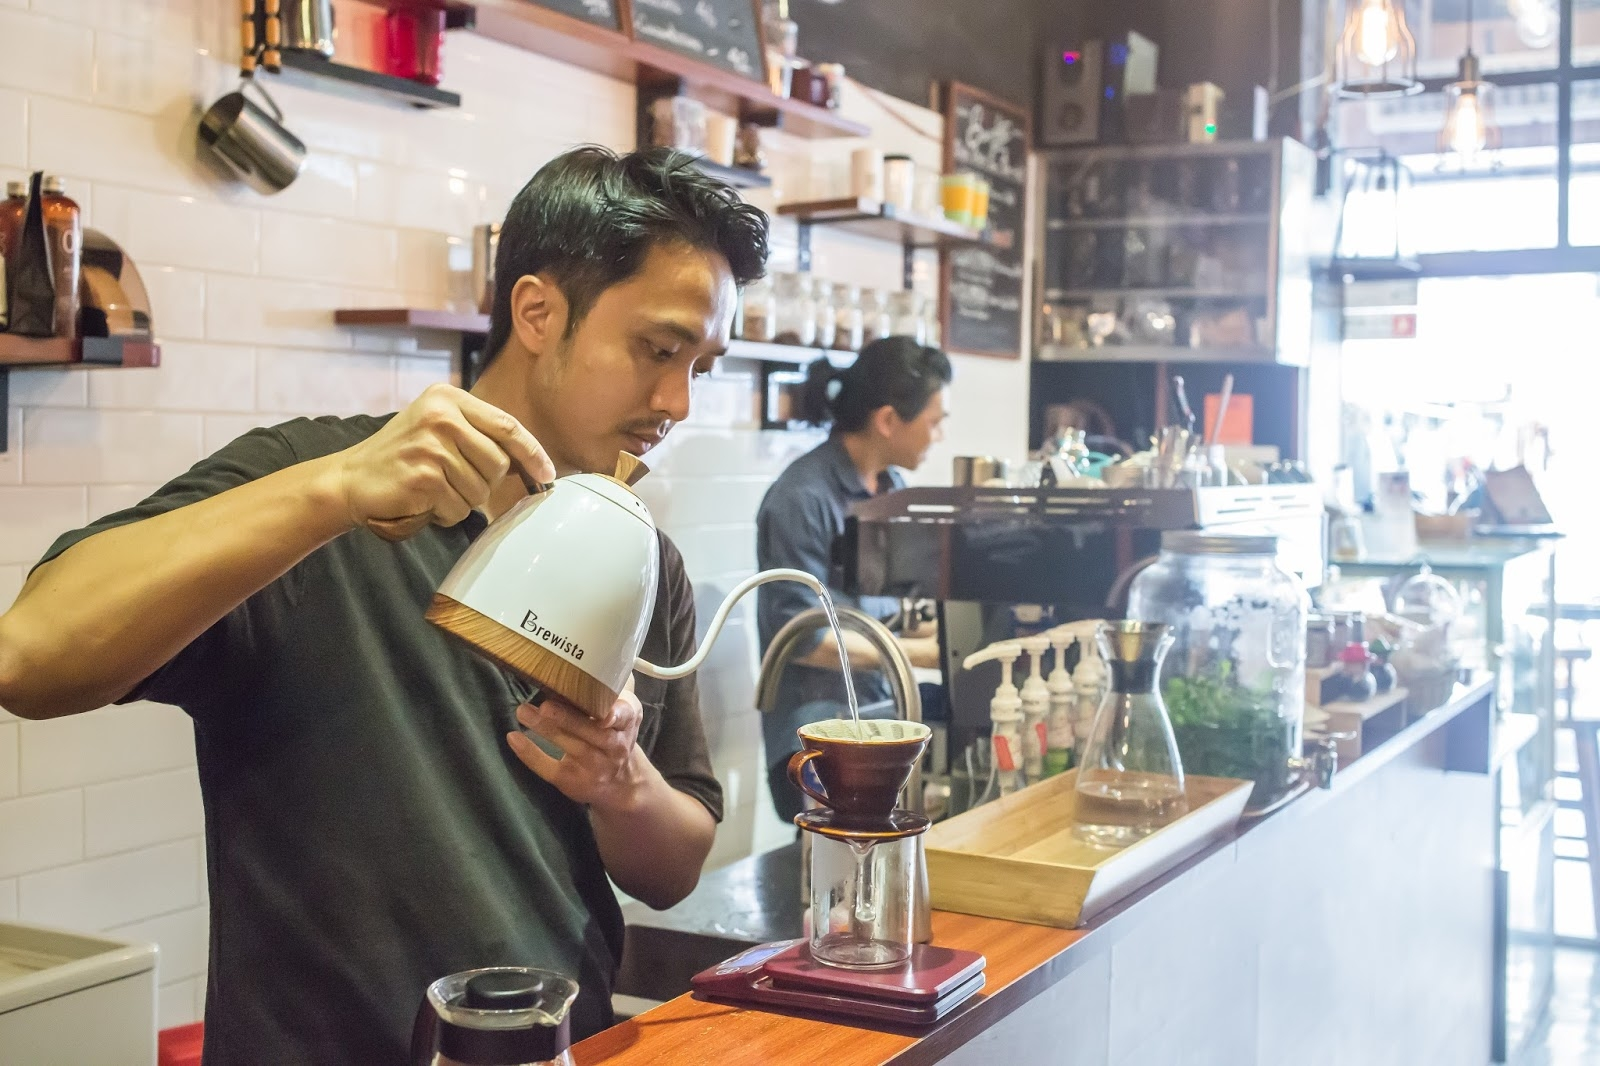 The Pour-Over - Trends in techniques vary by where the beans are from... ask a barista how they like theirs done!